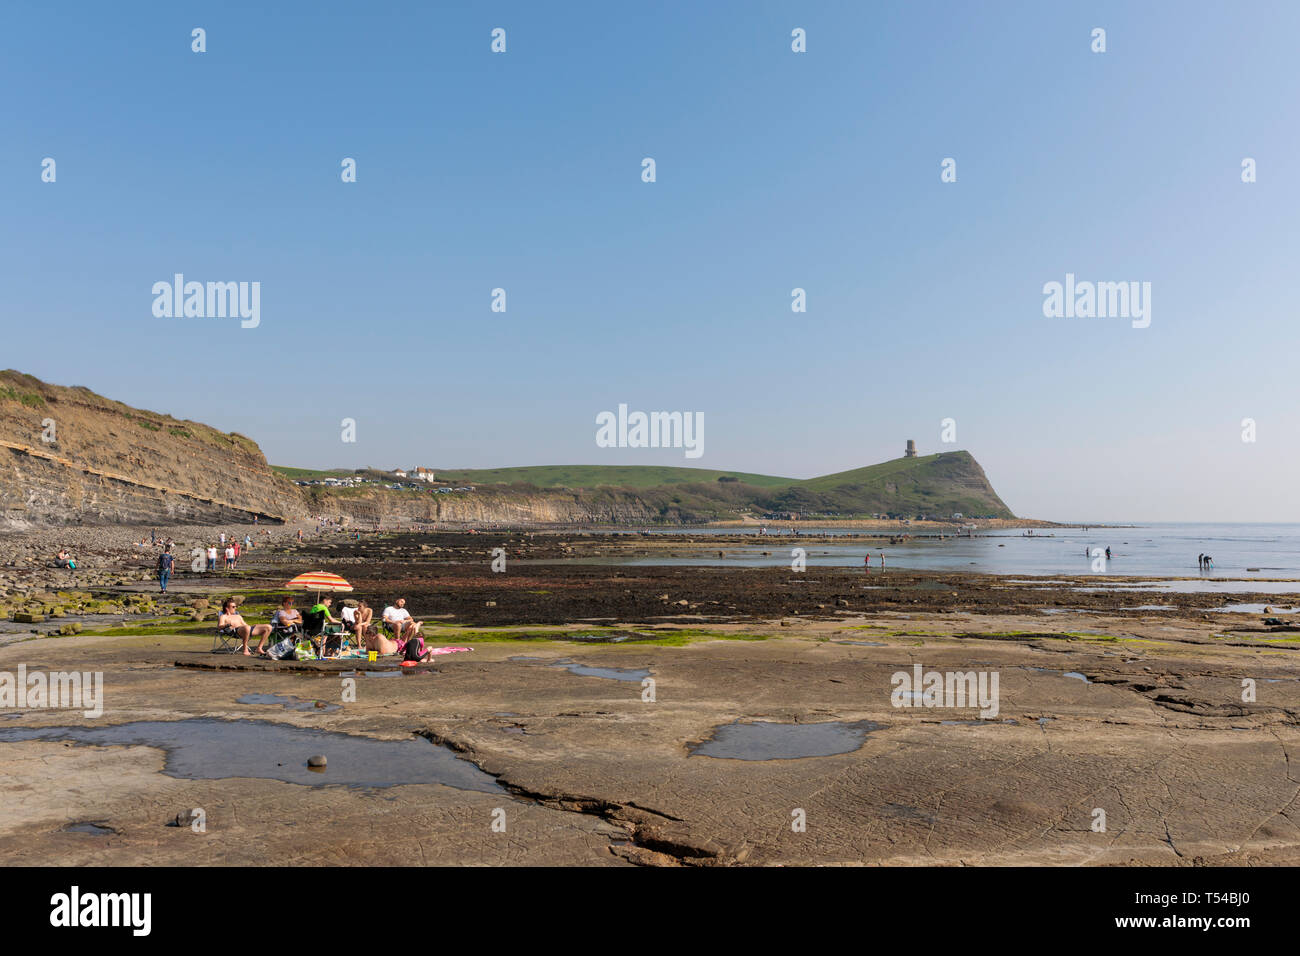 People enjoying the warm Easter Bank Holiday weather on the rock ledges at Kimmeridge Bay in Dorset 2019 - Stock Image